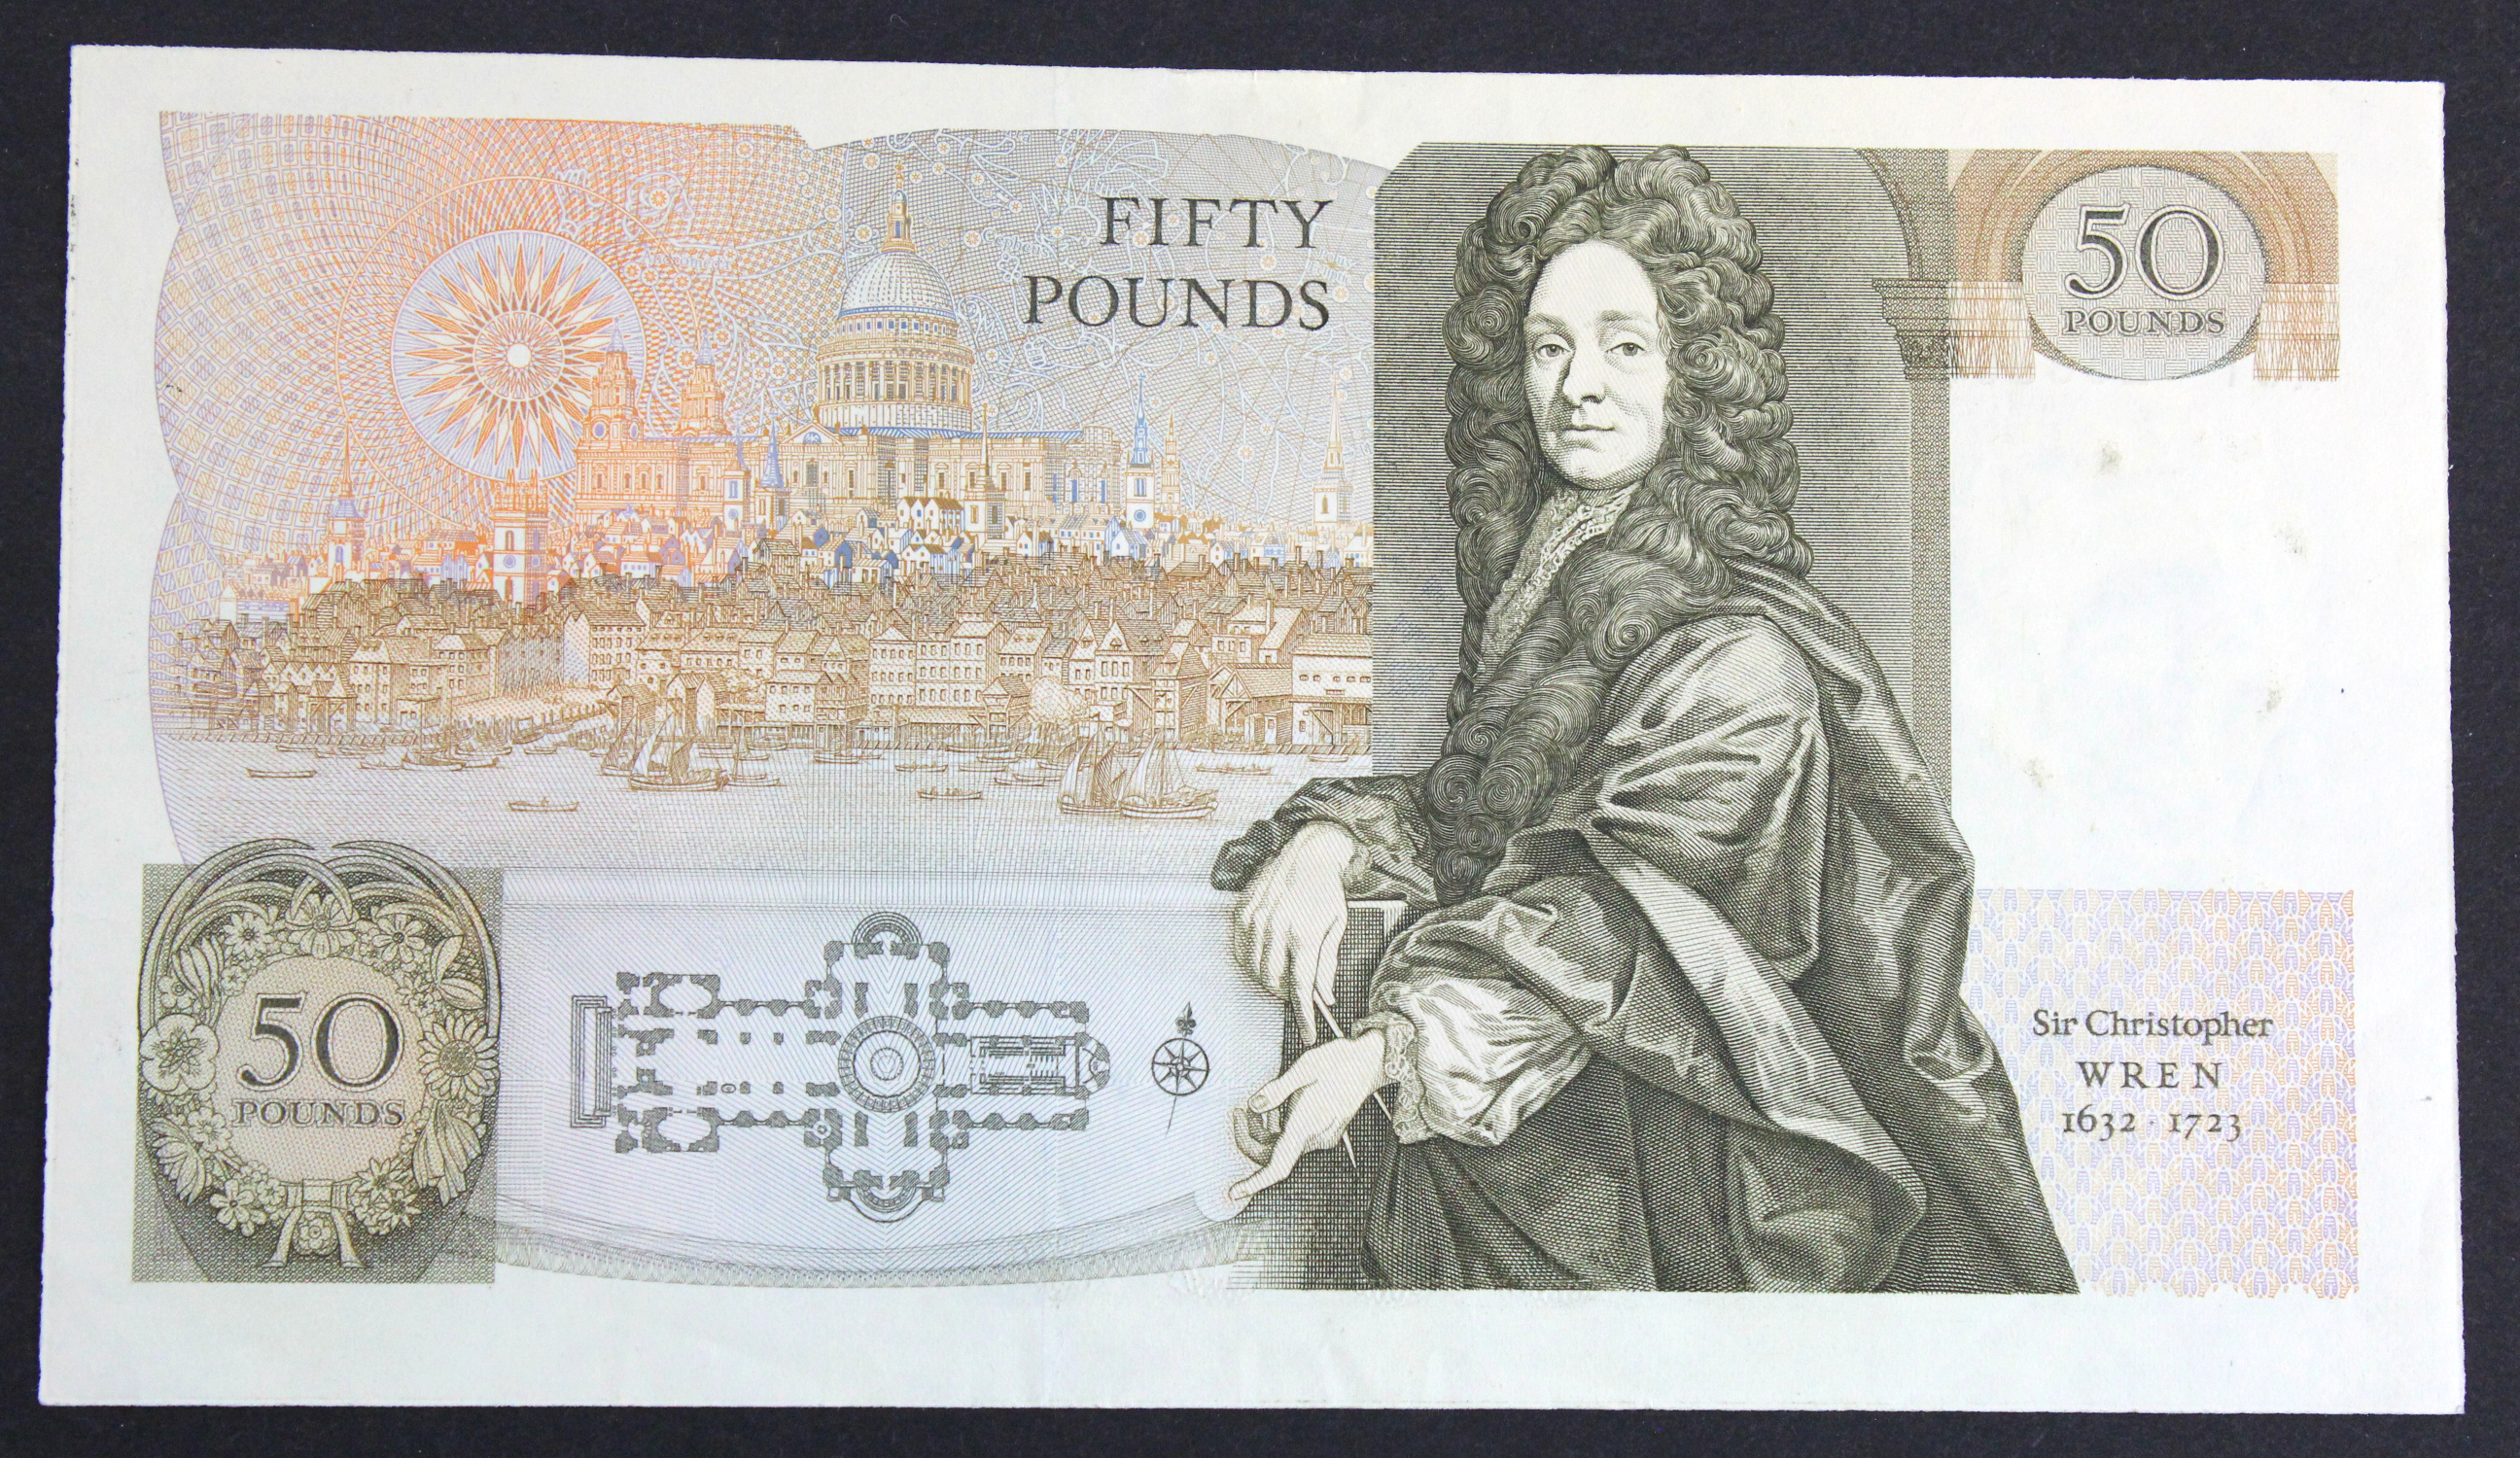 Somerset 50 Pounds issued 1981, FIRST RUN serial A01 255500 (B352, Pick381a) EF - Image 2 of 2